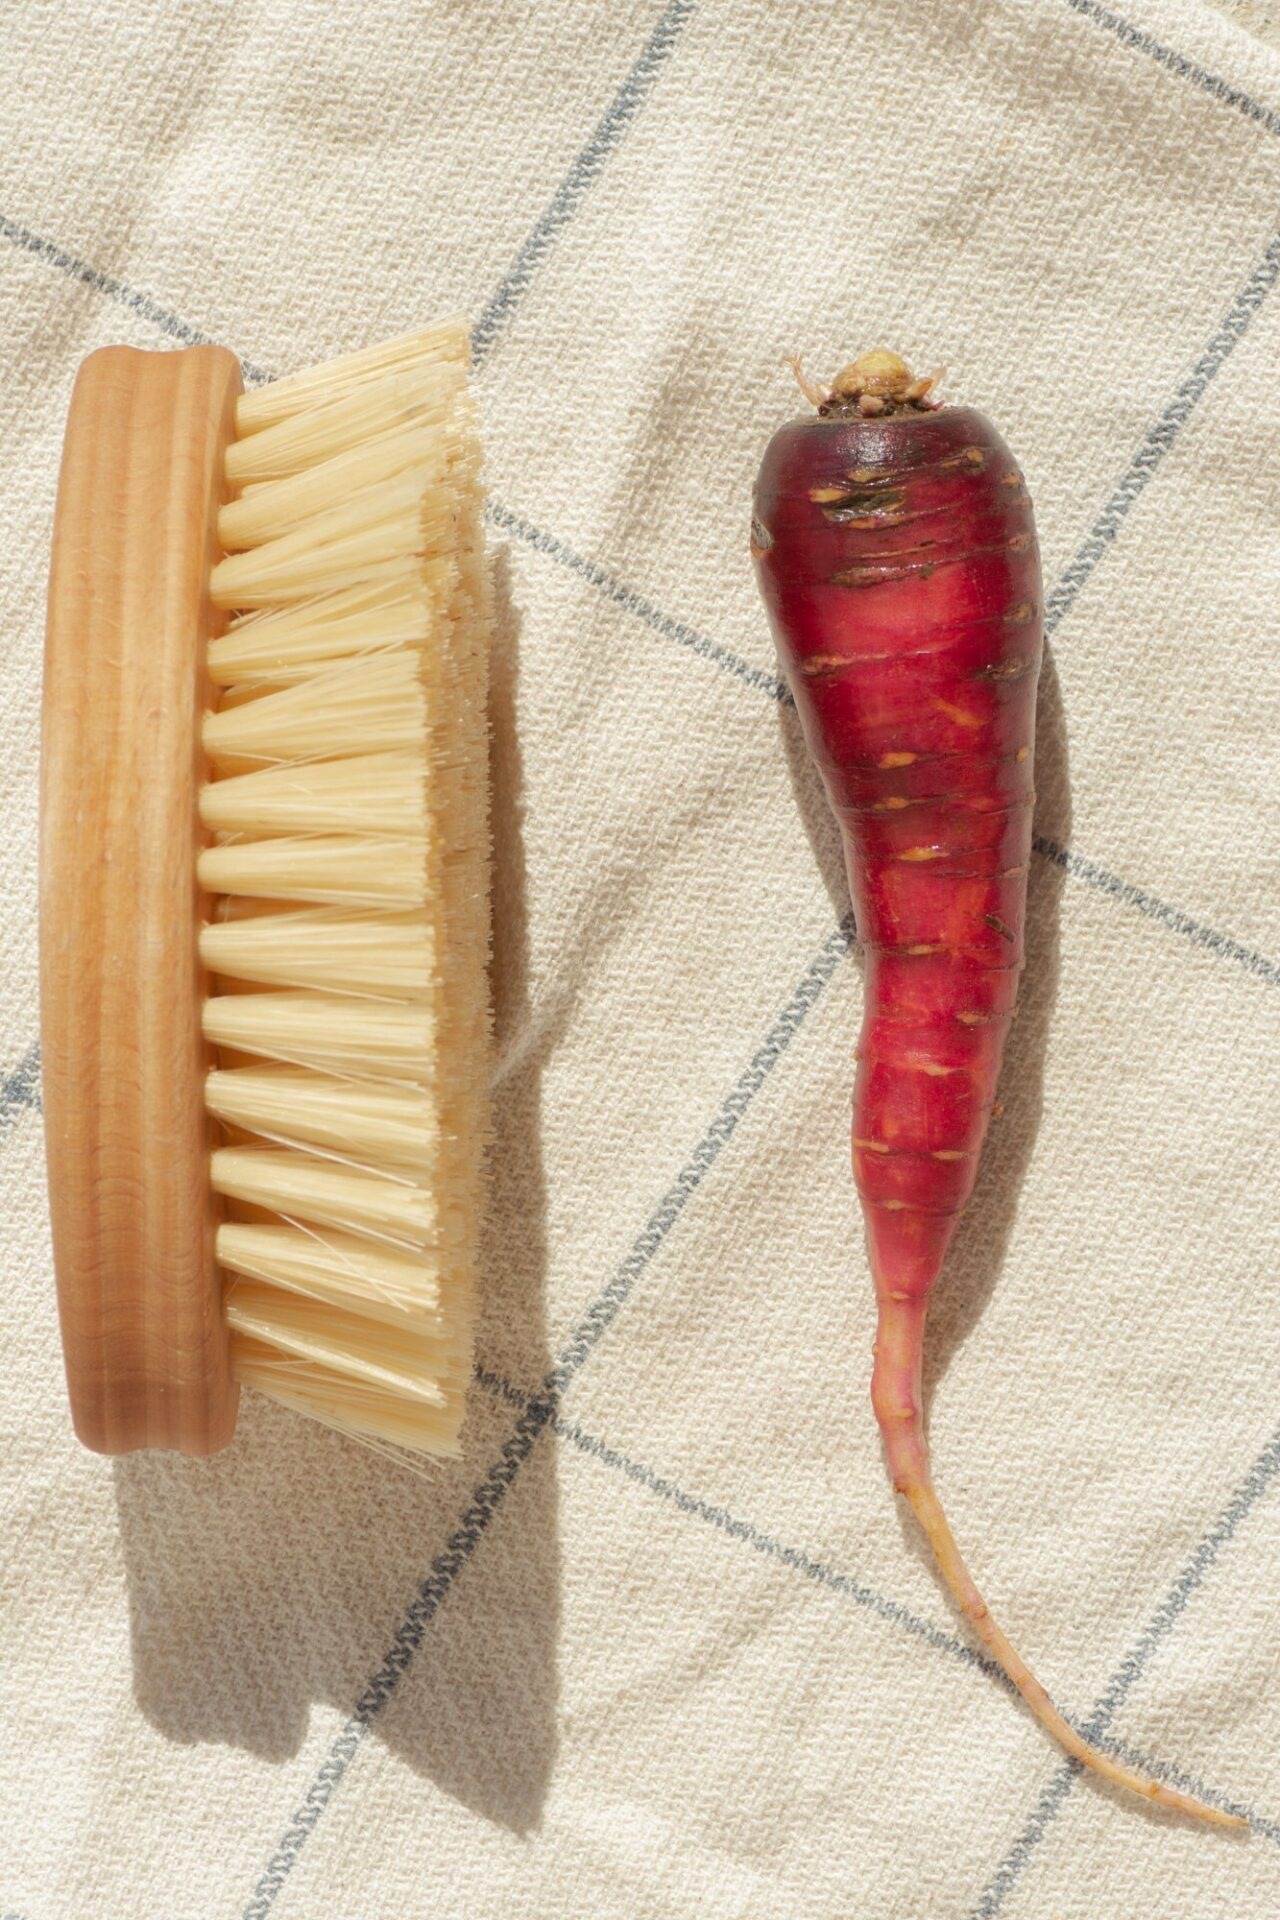 Sustainable plant-based compostable veggie brush oval shaped for cleaning your veggies zero-waste